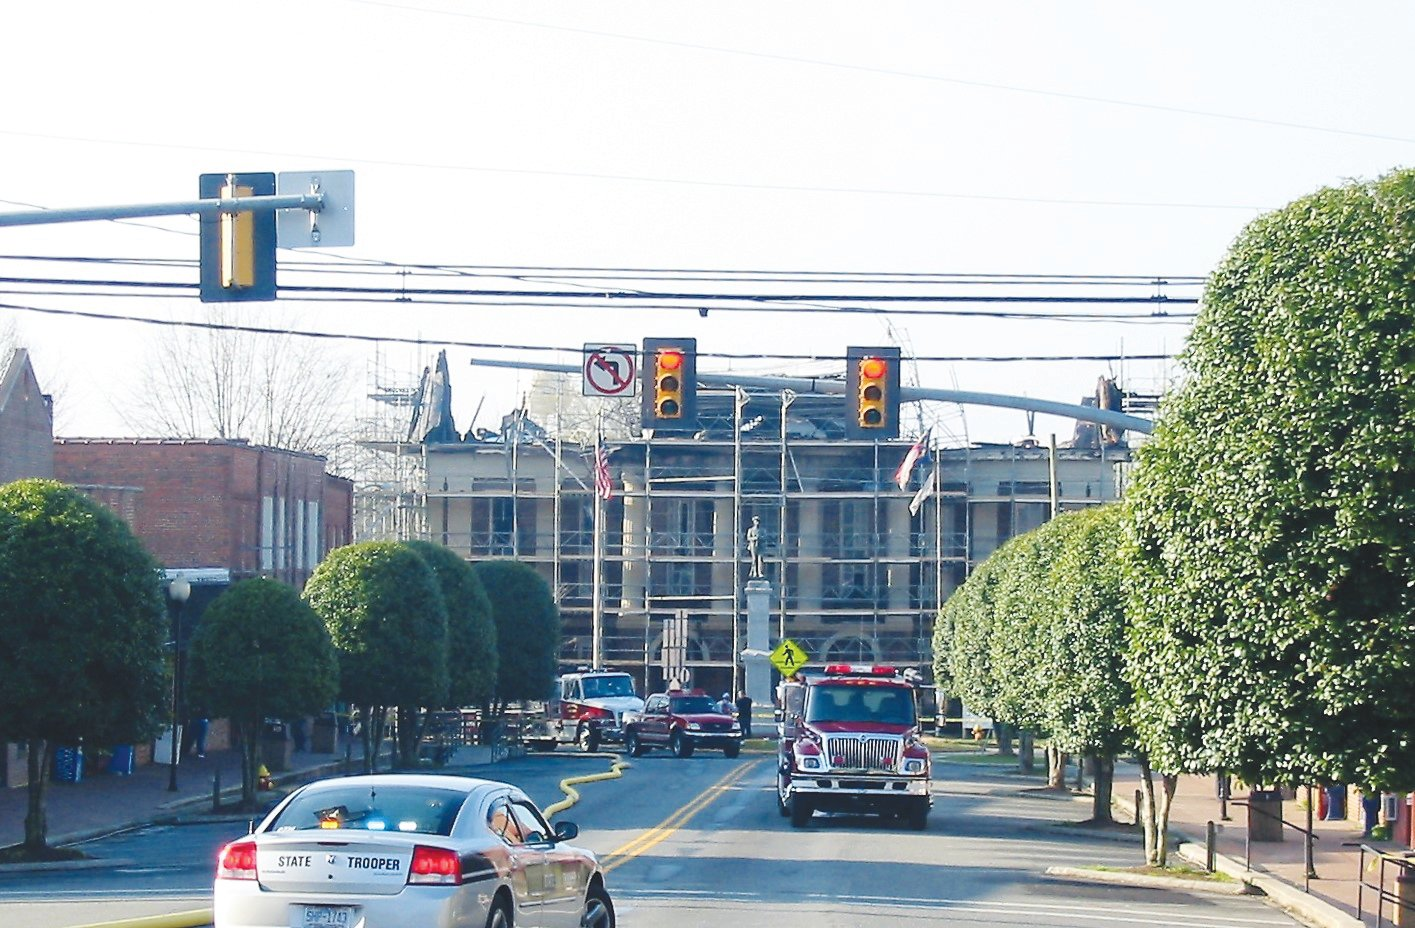 The view from Hillsboro Street shows the badly-damaged courthouse, still surrounded by scaffolding from renovations under way when the fire errupted.